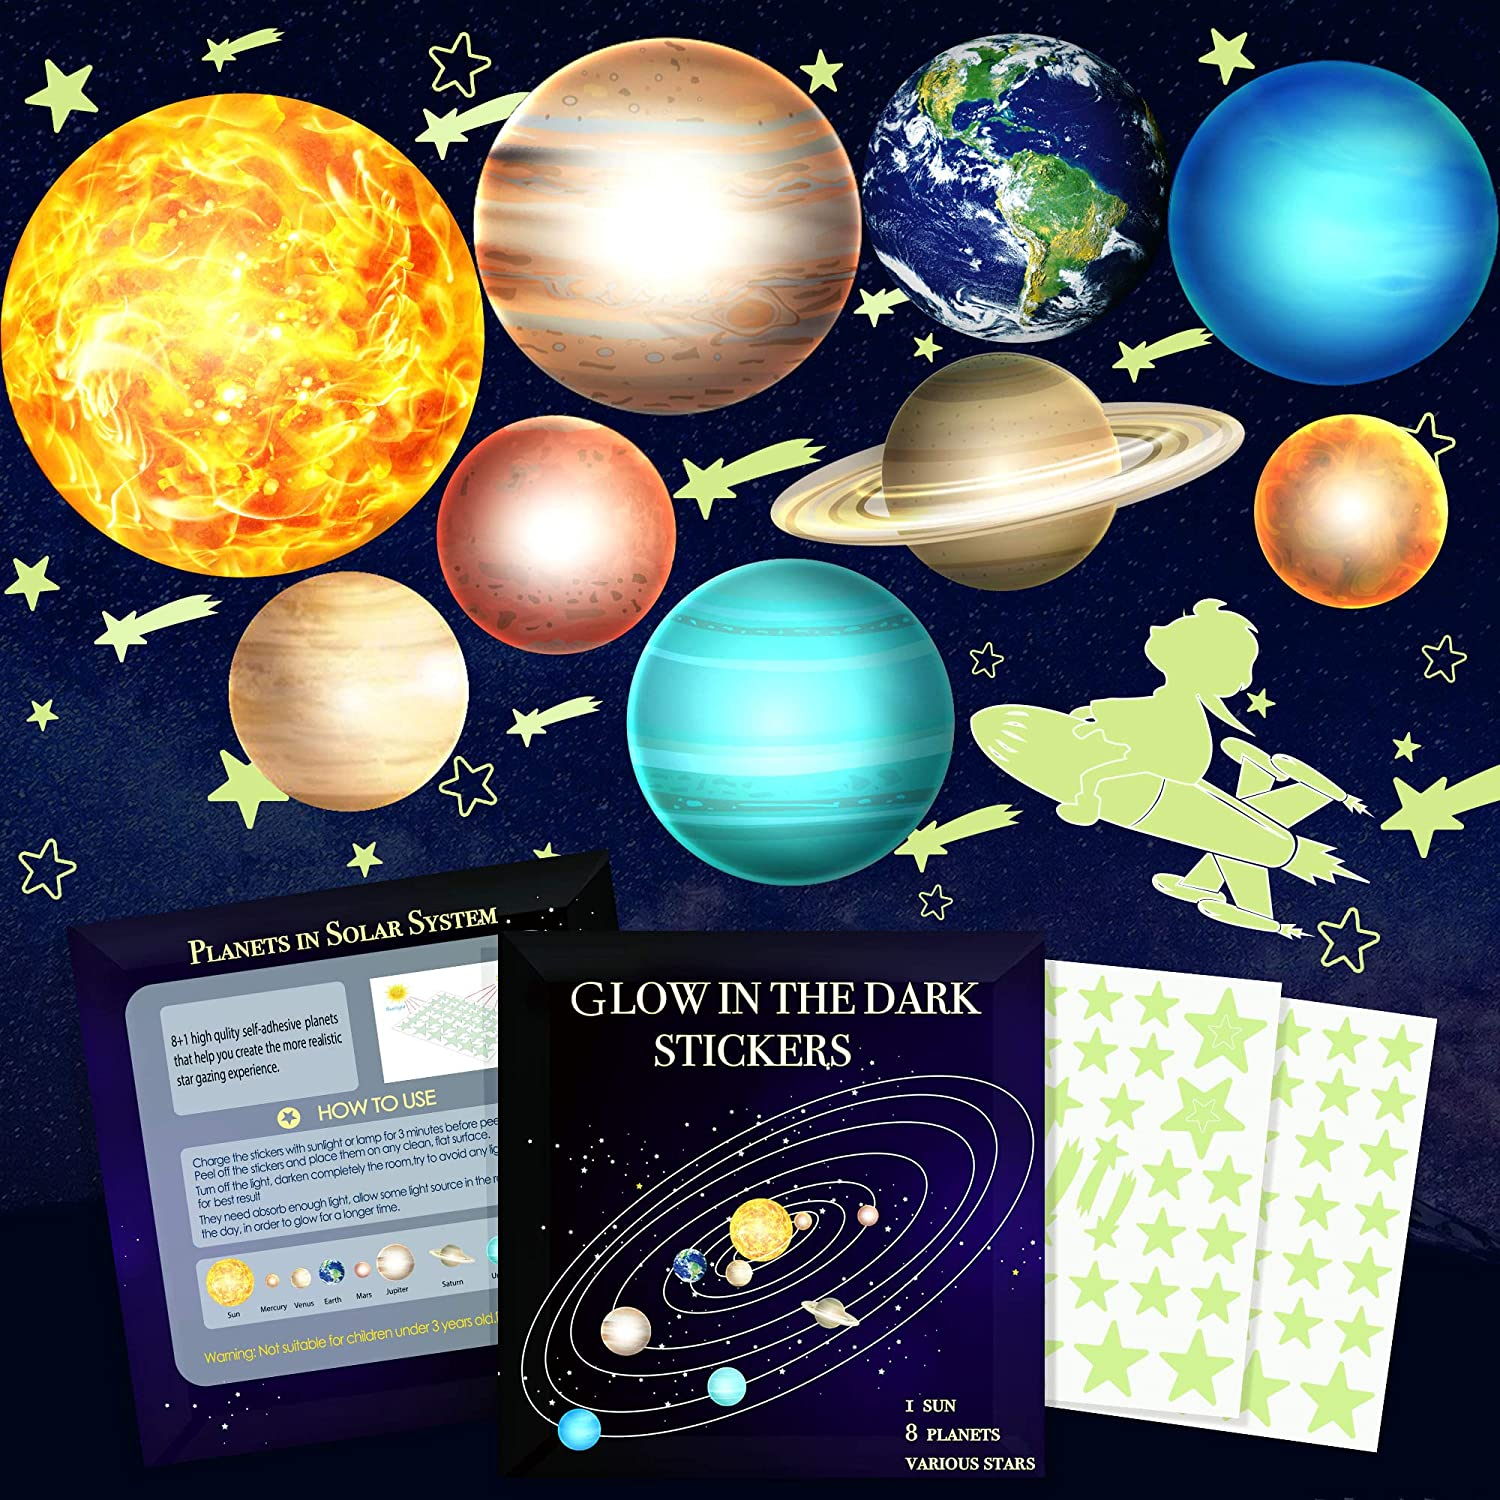 Glow in The Dark Stars and Planets, Bright Solar System Wall Stickers -9 Glowing Ceiling Decals for Kids Bedroom Any Room, Shining Space Decoration, Birthday Christmas Gift for Boys and Girls